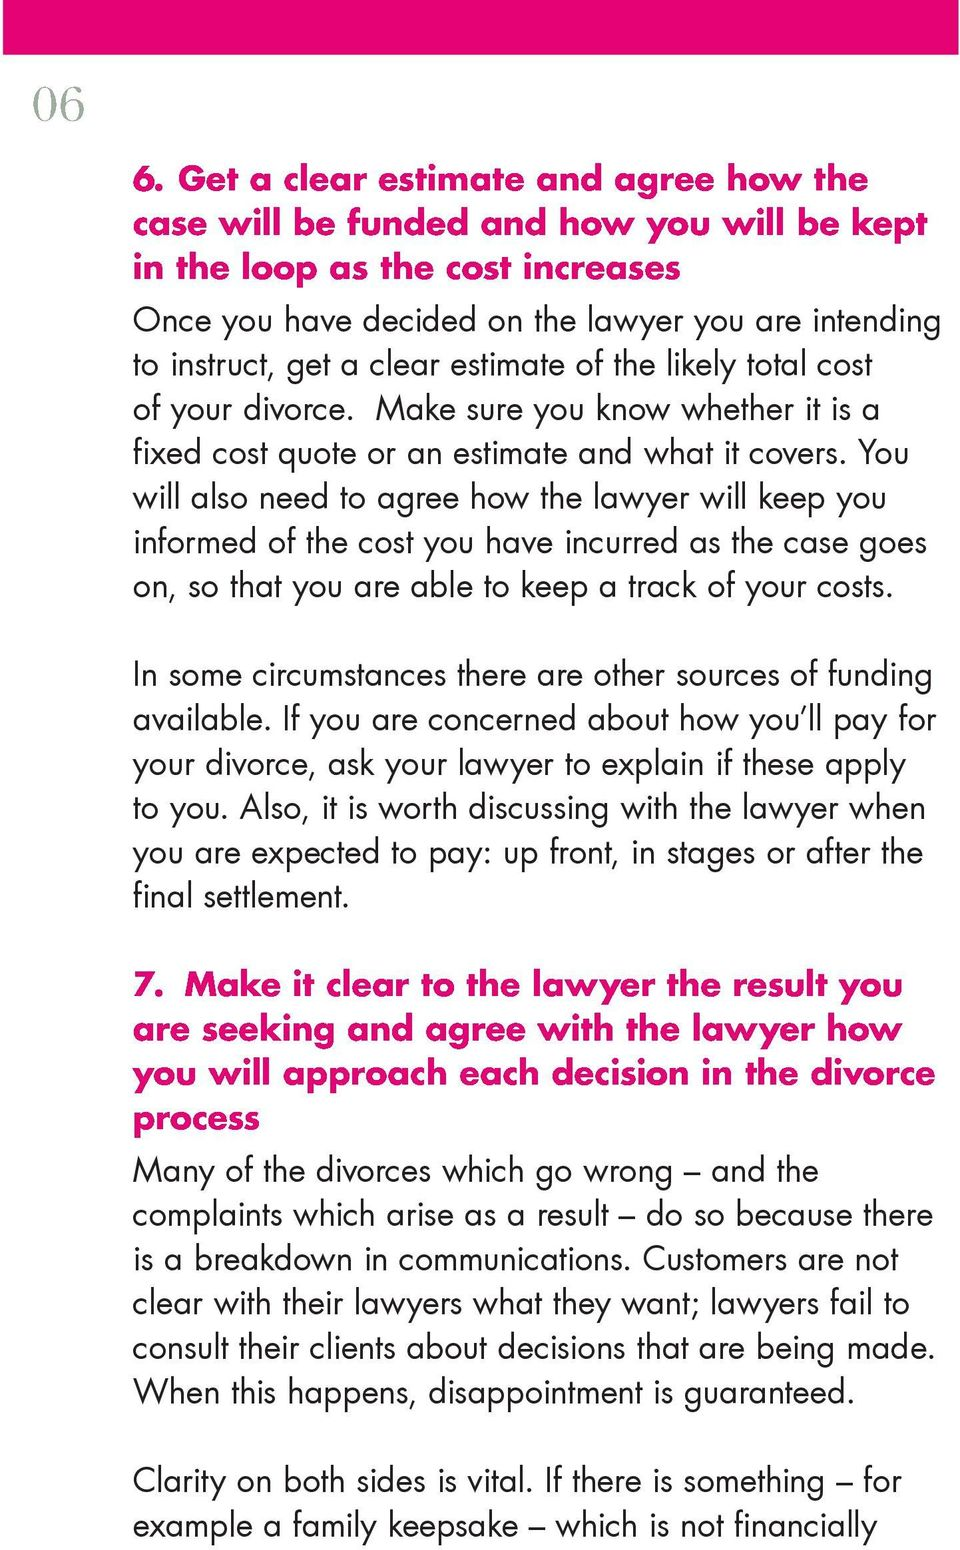 You will also need to agree how the lawyer will keep you informed of the cost you have incurred as the case goes on, so that you are able to keep a track of your costs.